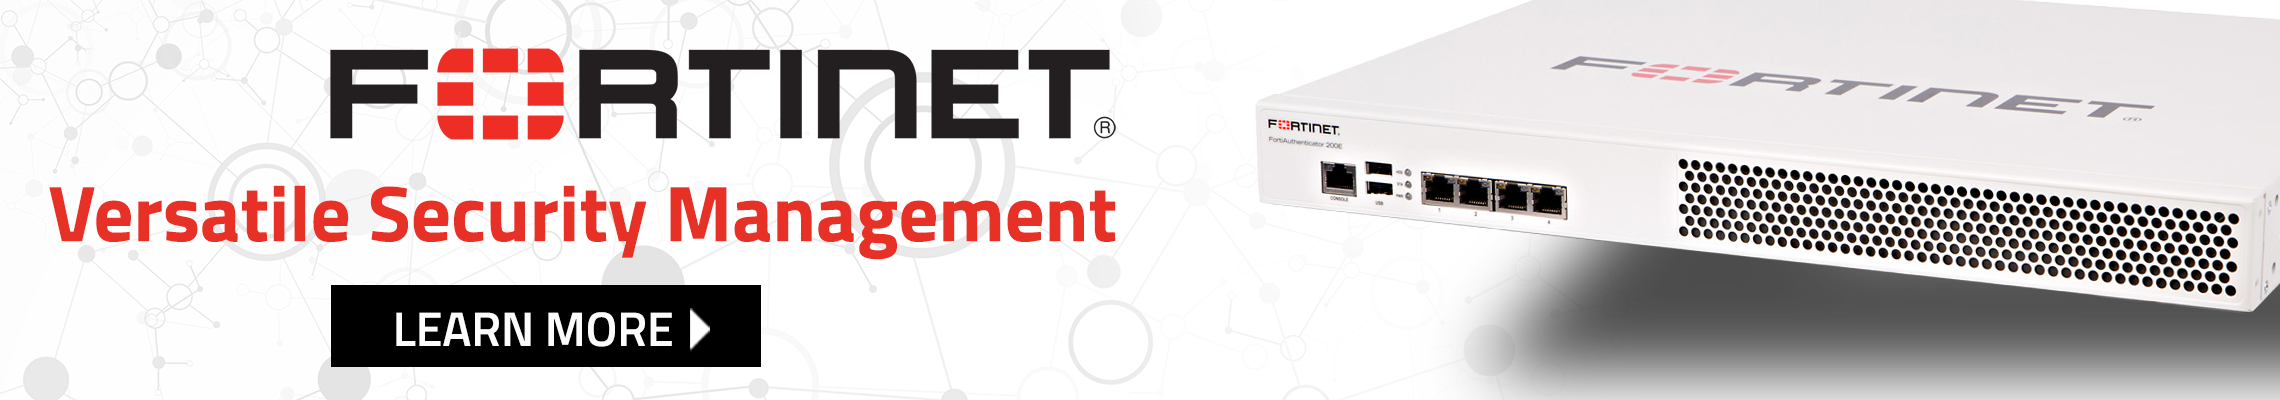 Fortinet Management Banner